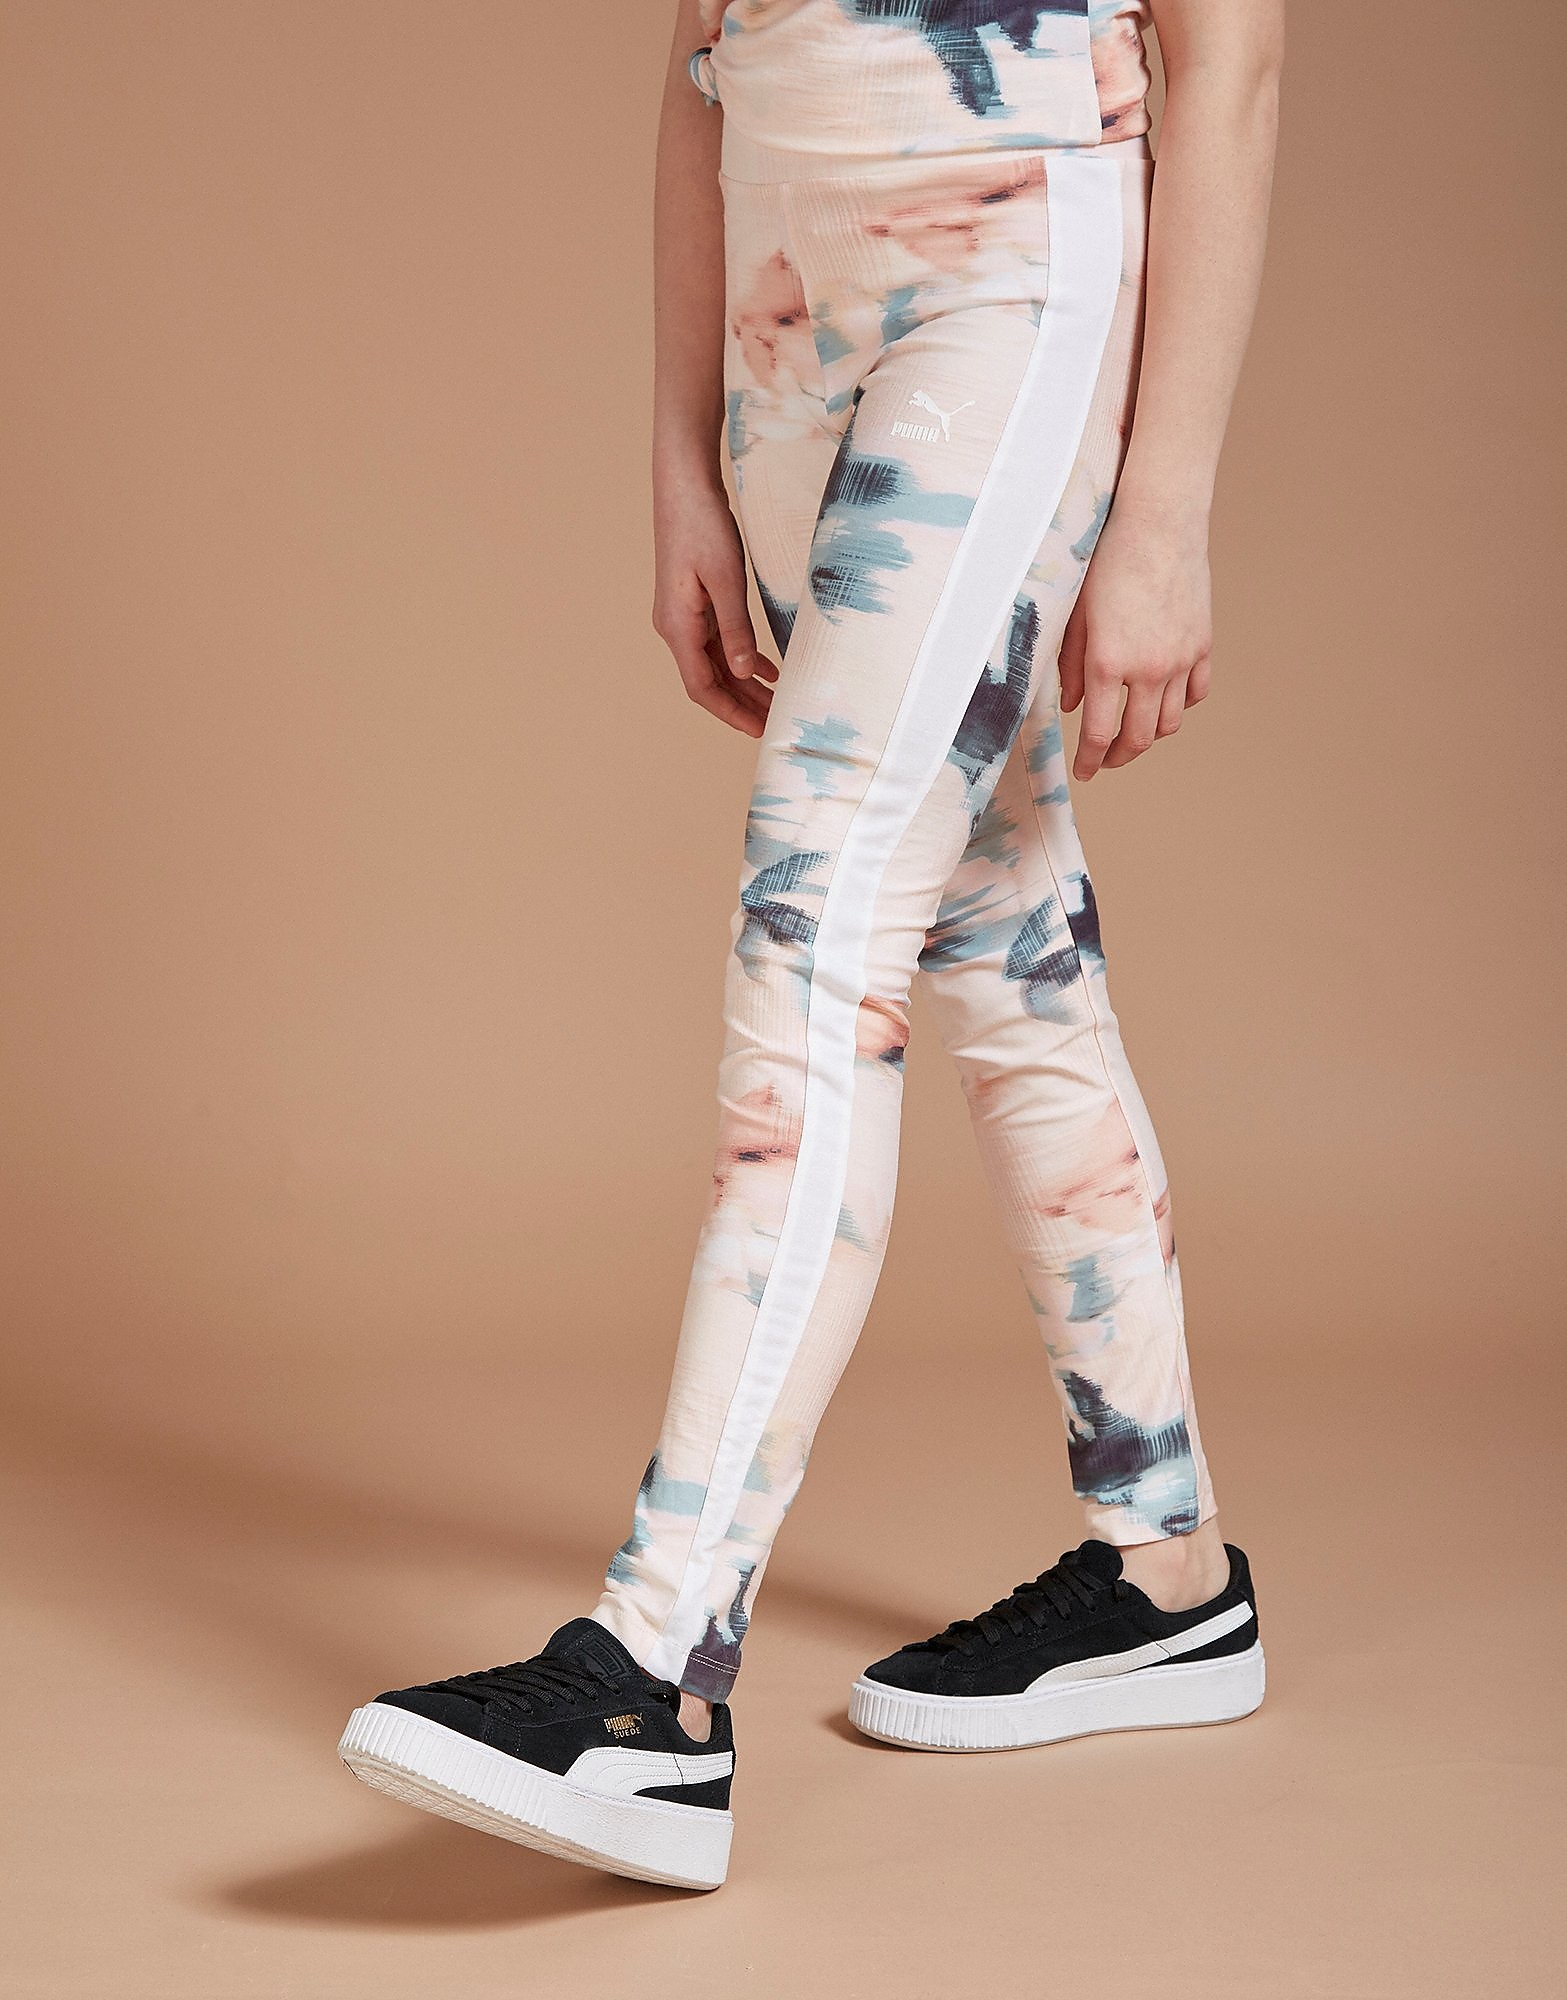 PUMA Girls' Floral All-Over-Print Leggings